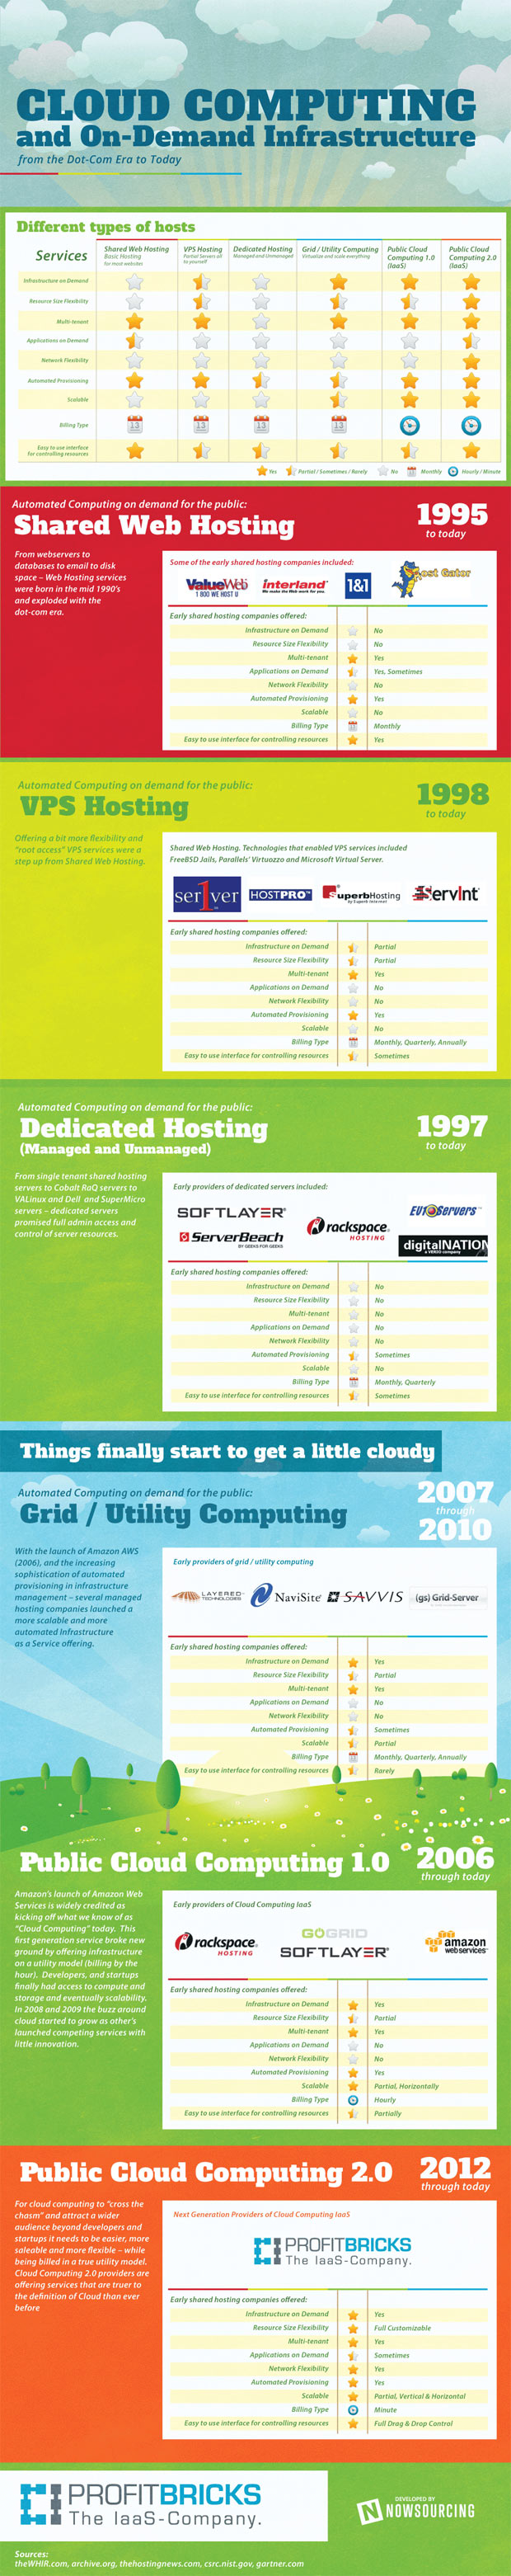 on-demand-infrastructure-history-infographic